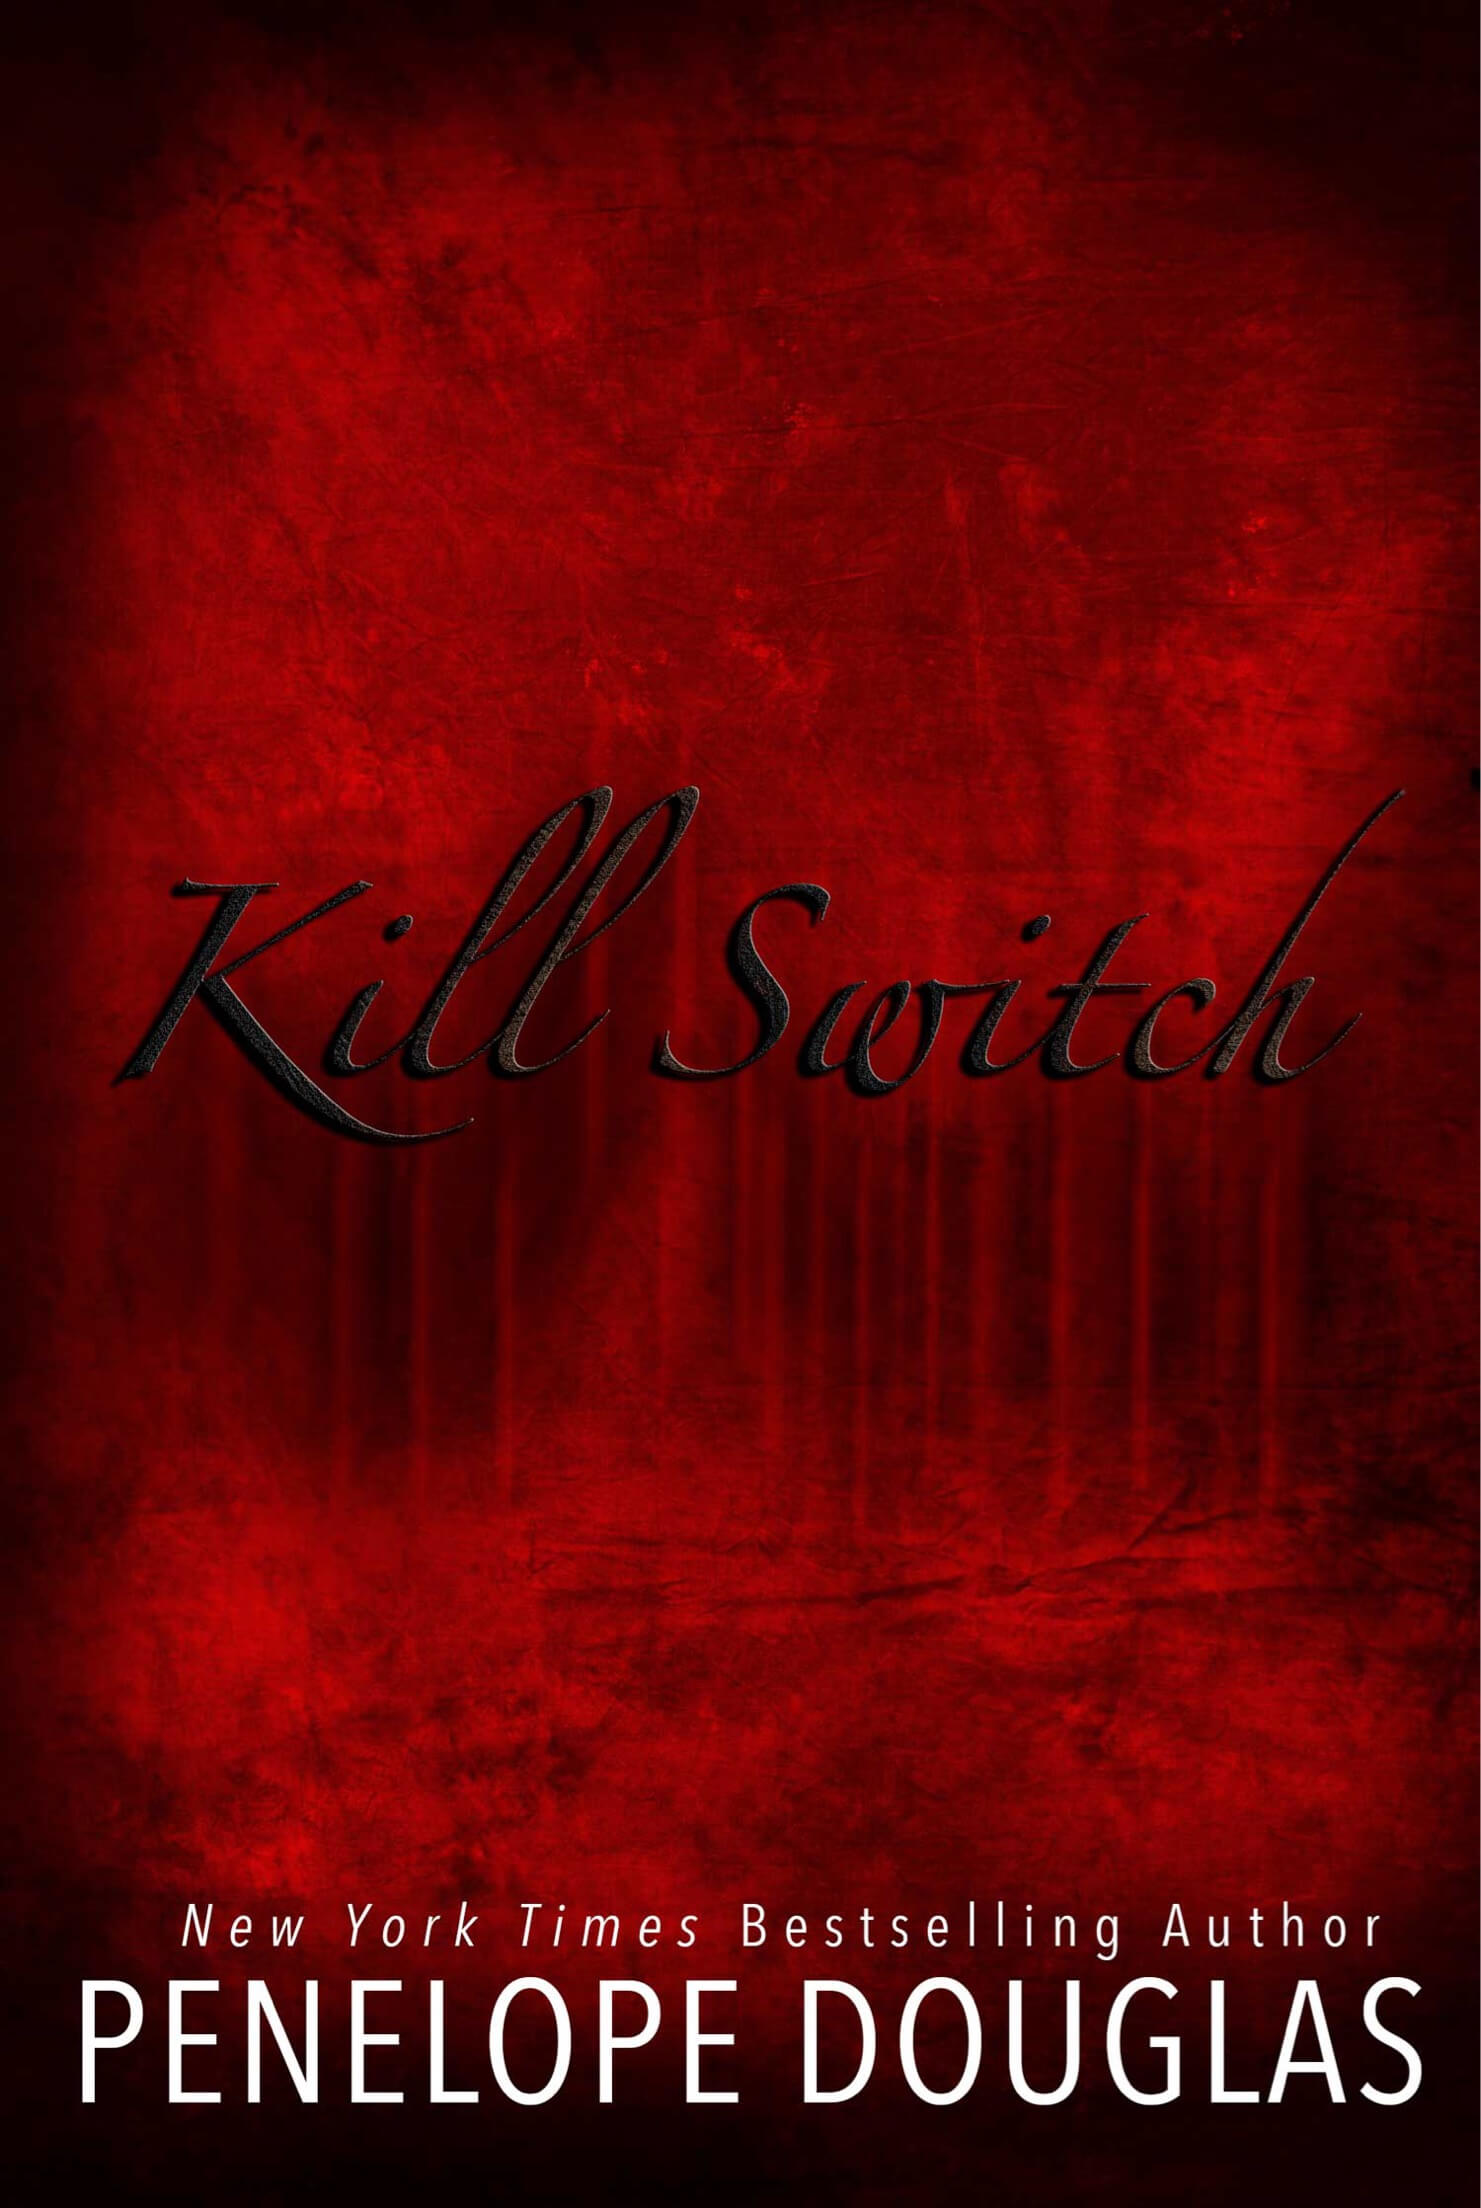 Blog Tour * Kill Switch (Devil's Night book 3) by Penelope Douglas * 5 Star Book Review * Excerpt